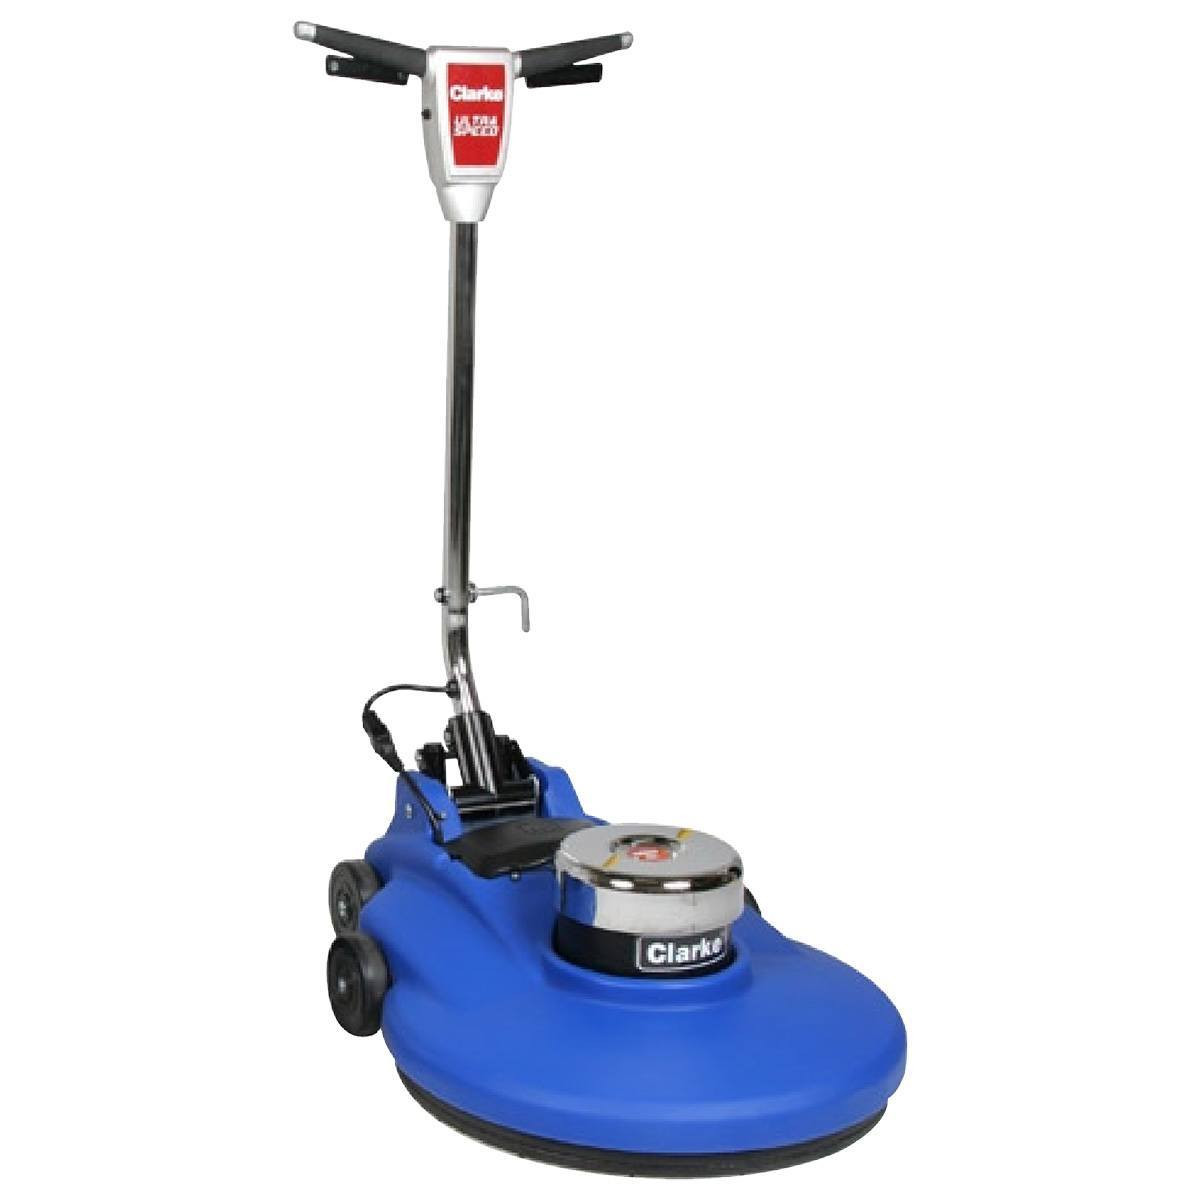 Clarke 174 High Speed Floor Buffer With Dust Control